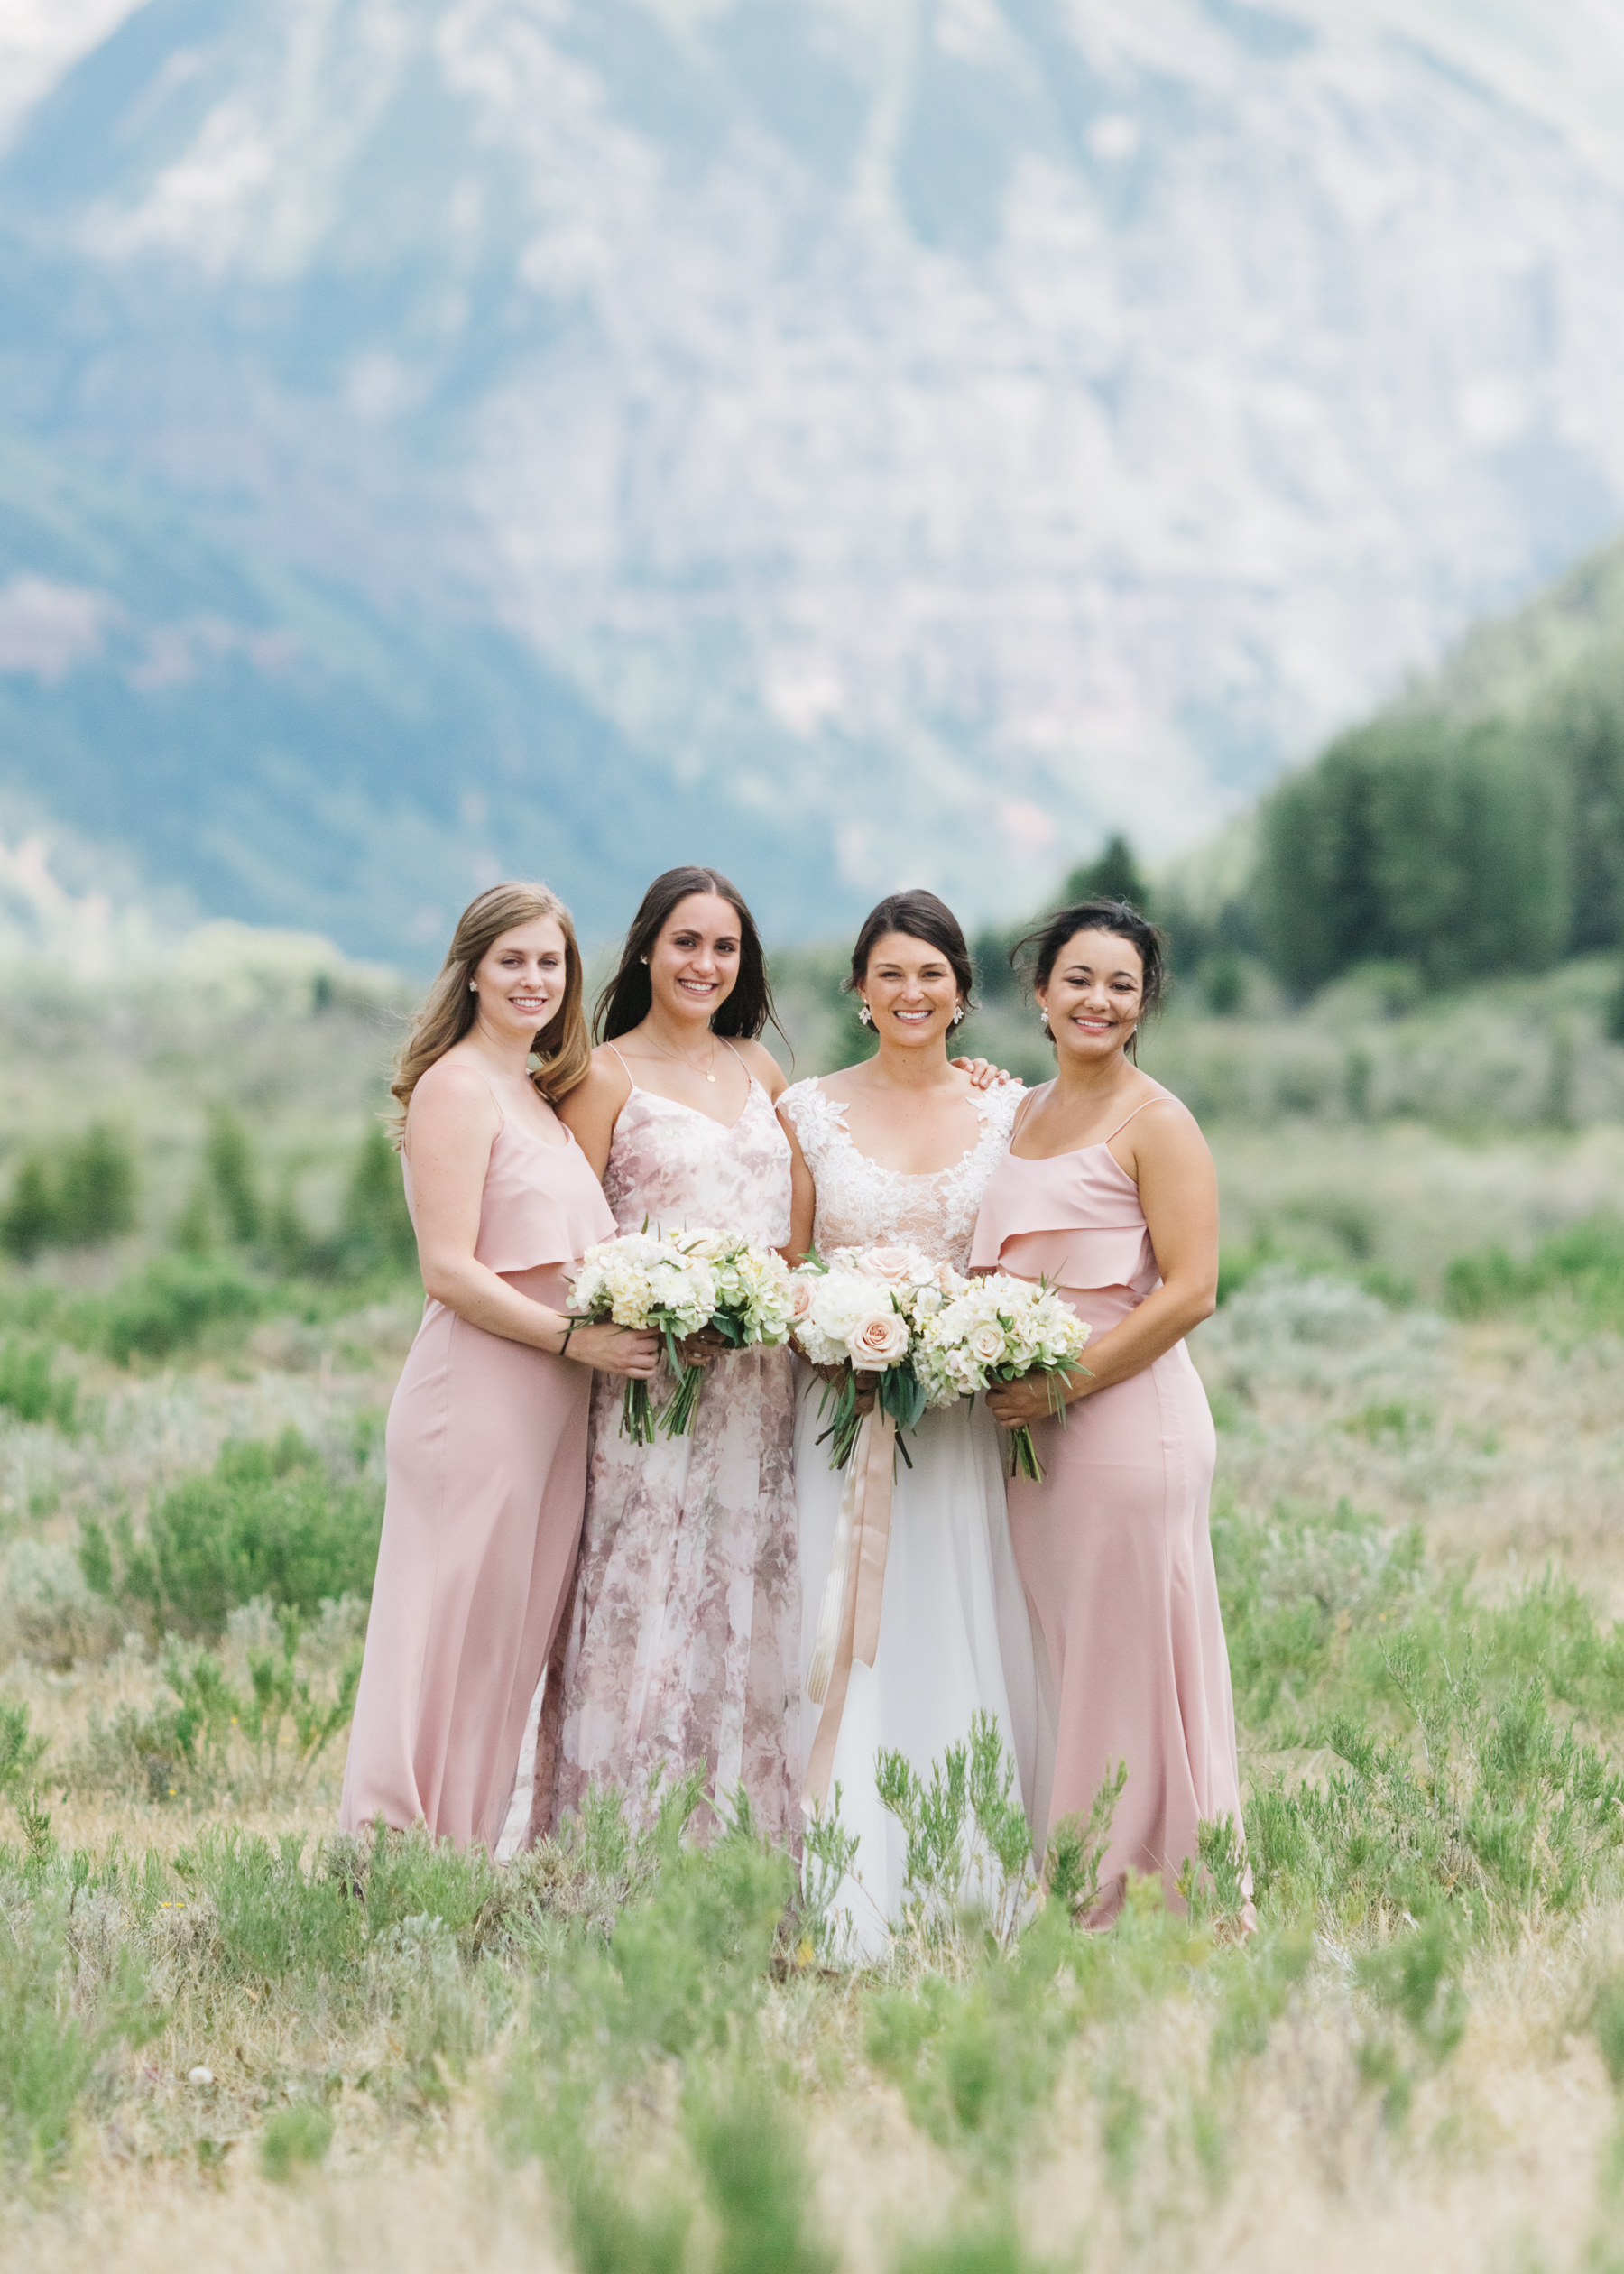 Destination wedding in Telluride Colorado, with ceremony at St. Patrick's Catholic Church and reception at Gorrono Ranch. First look at Valley Floor and the entire wedding paraded through Telluride's Main Street (Colorado Ave.)